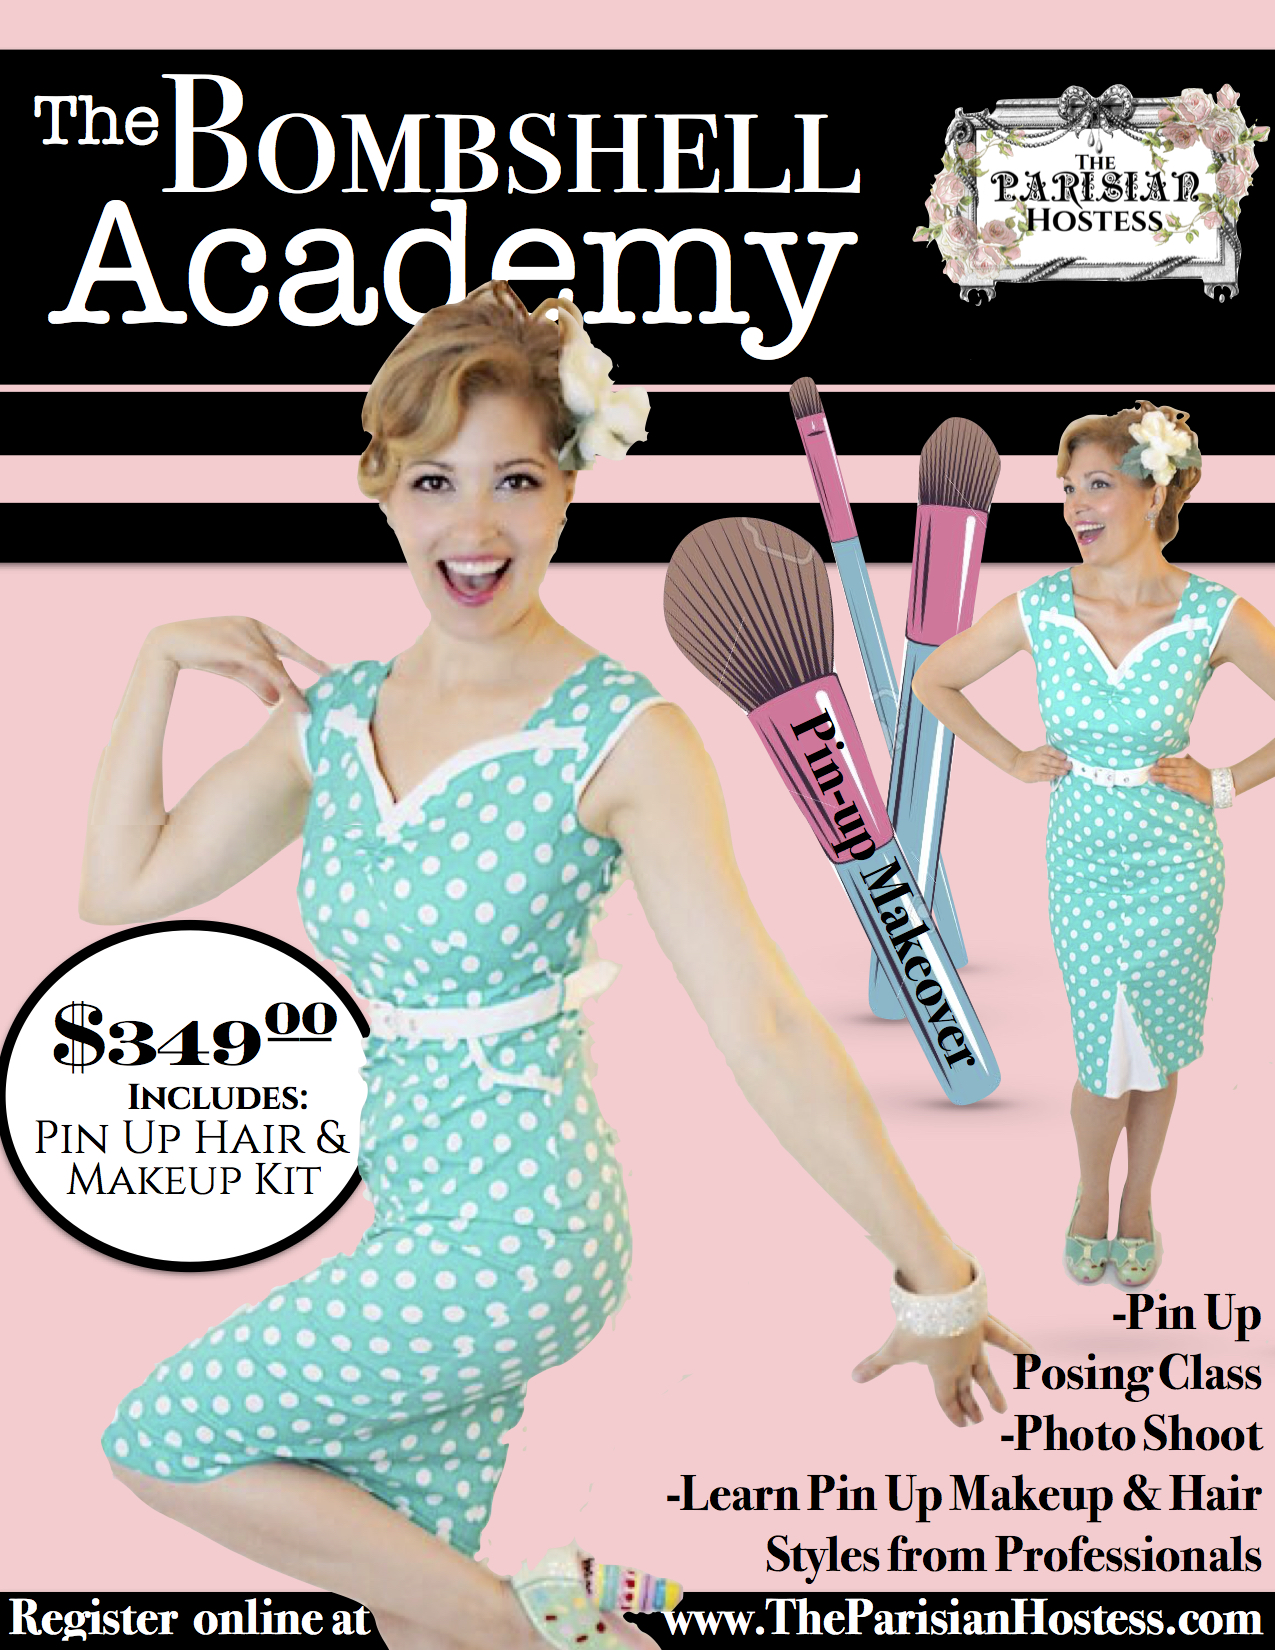 The Bombshell Academy